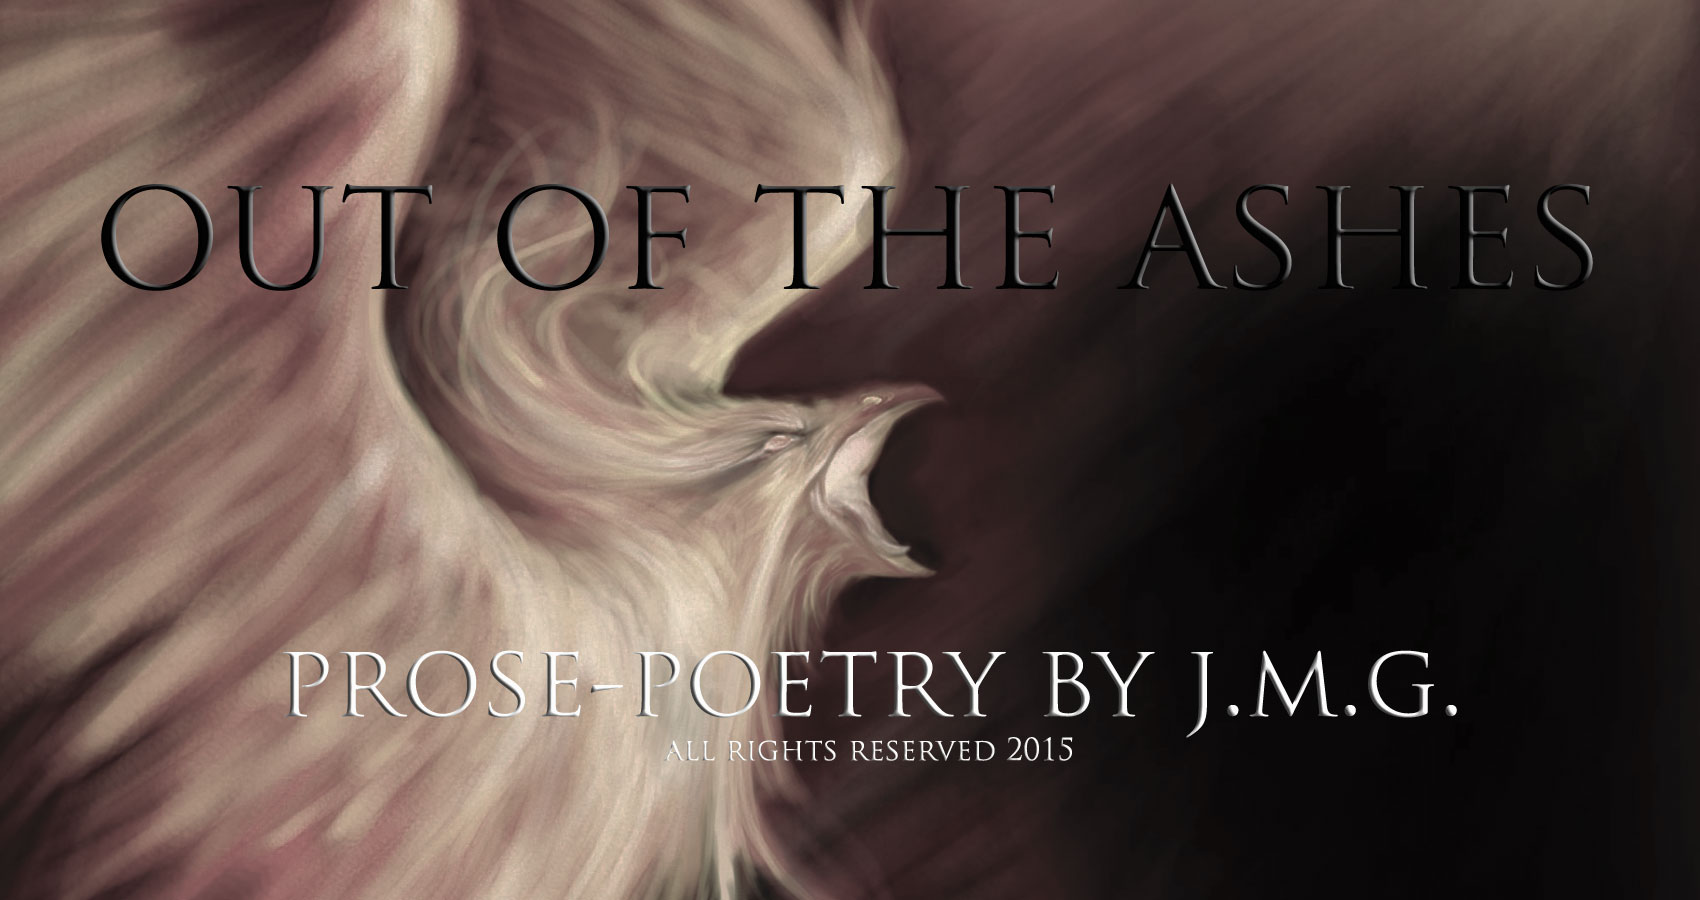 Out of the Ashes Prose-Poetry at spillwords.com by J.M.G.